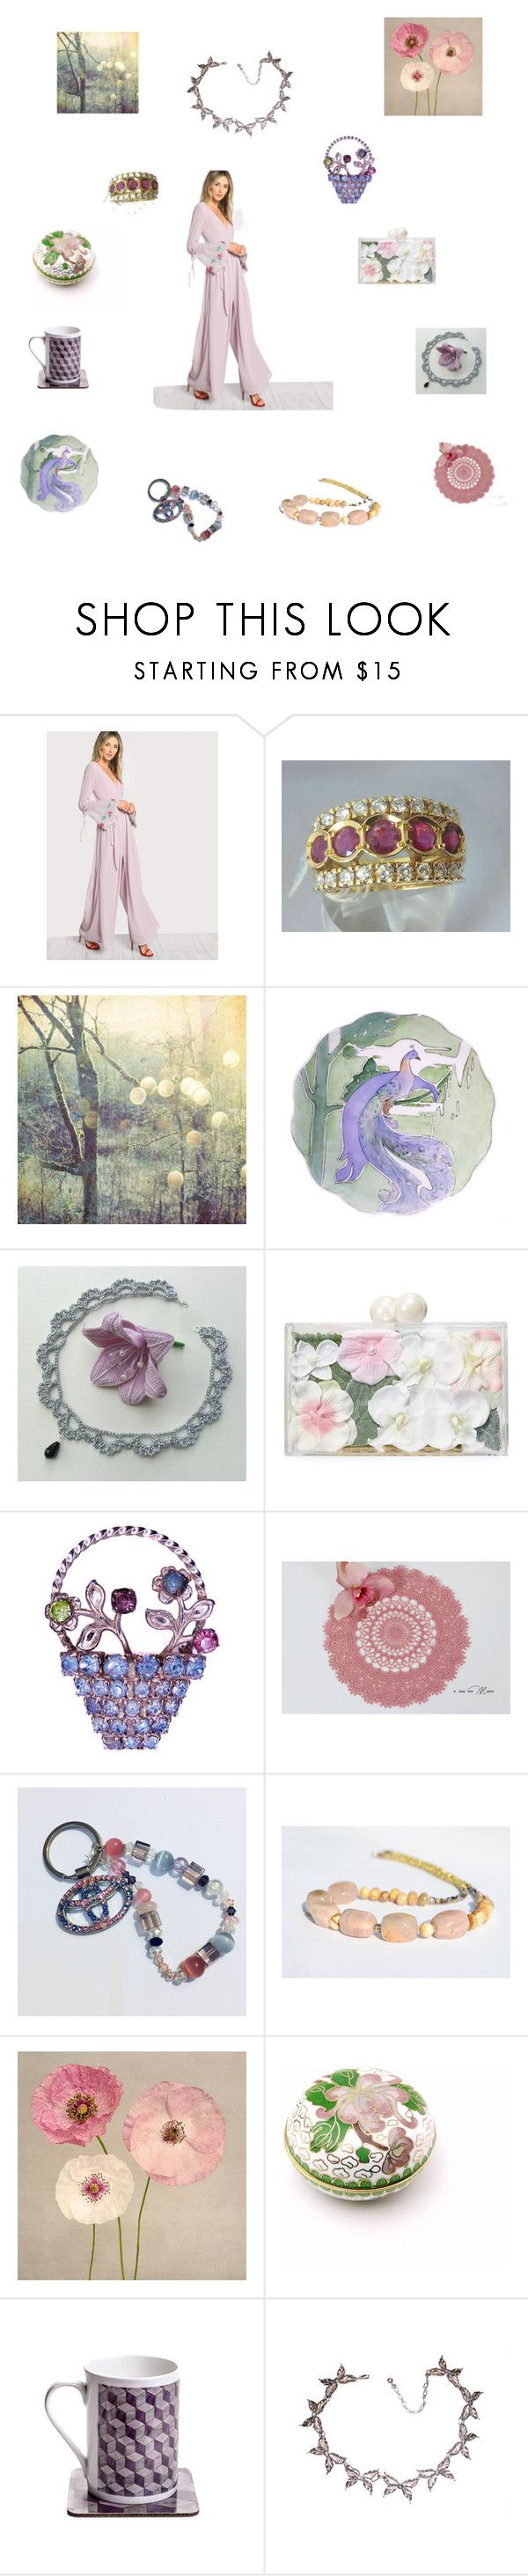 """""""Pastel shades for her"""" by einder ❤ liked on Polyvore featuring Haviland and Ashlyn'd"""